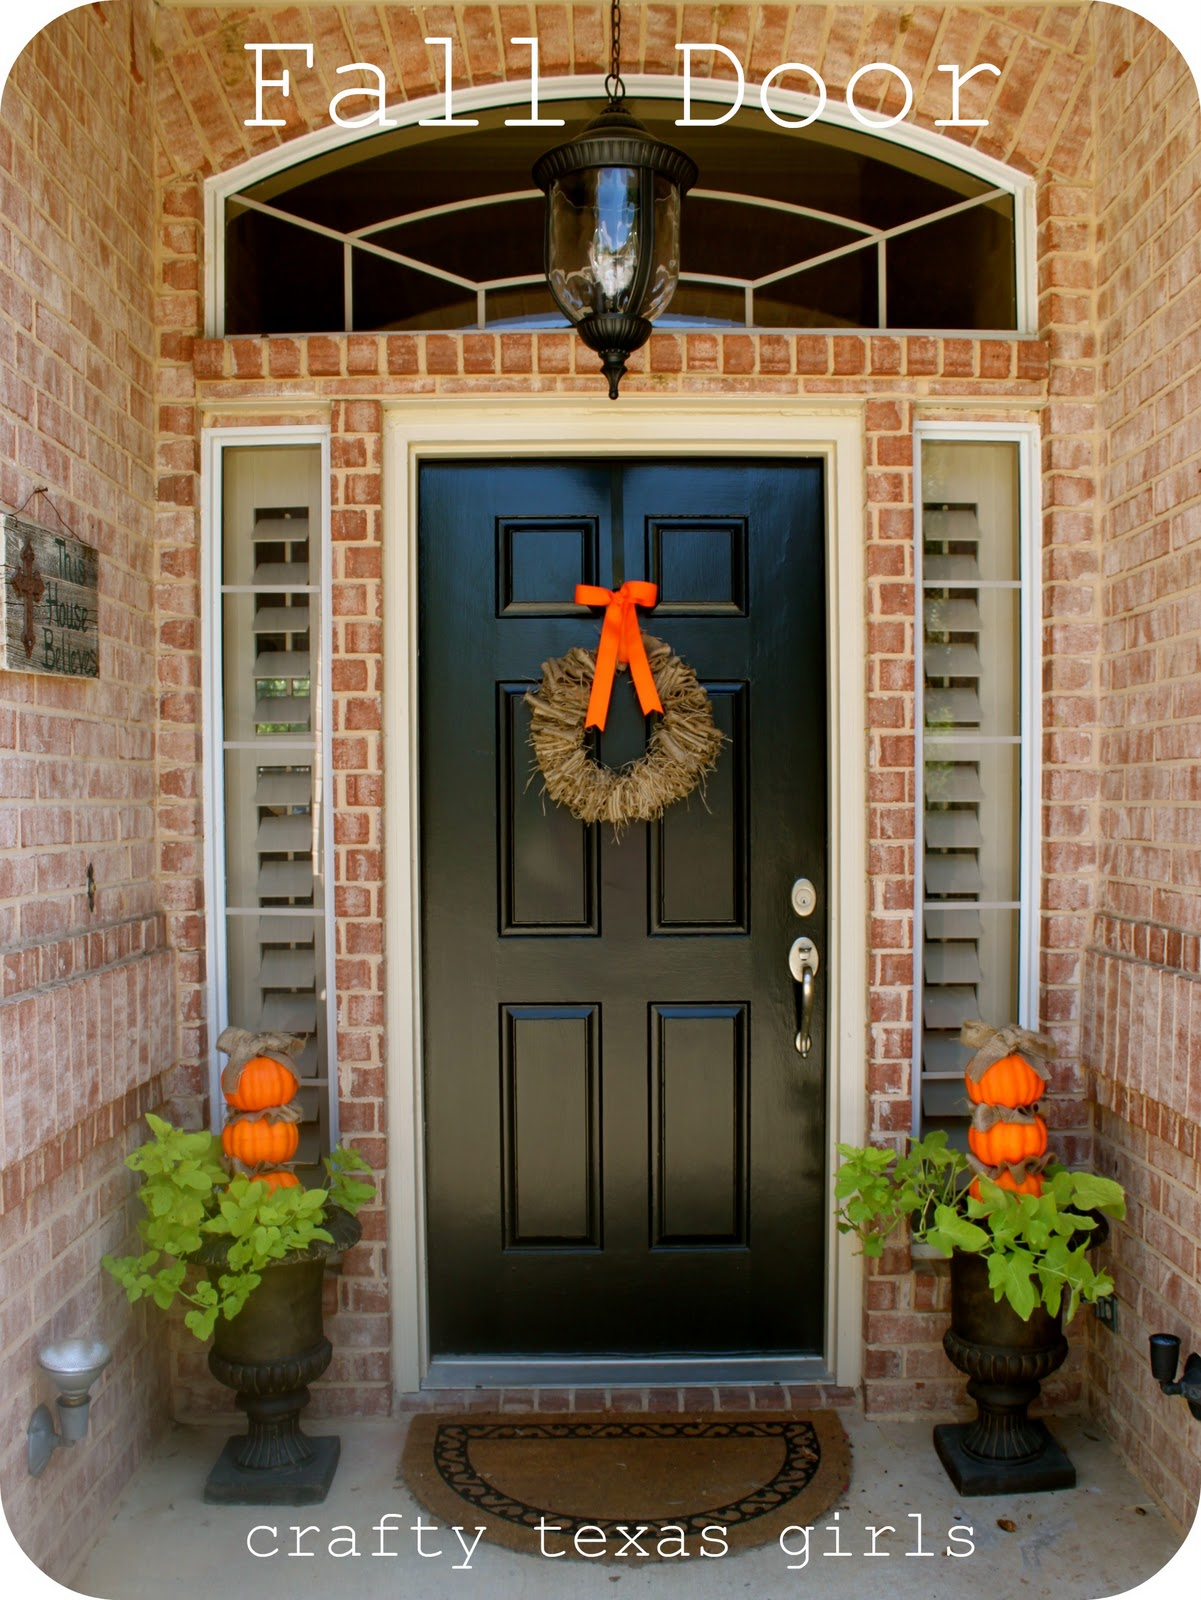 Crafty Texas Girls: Fall Door